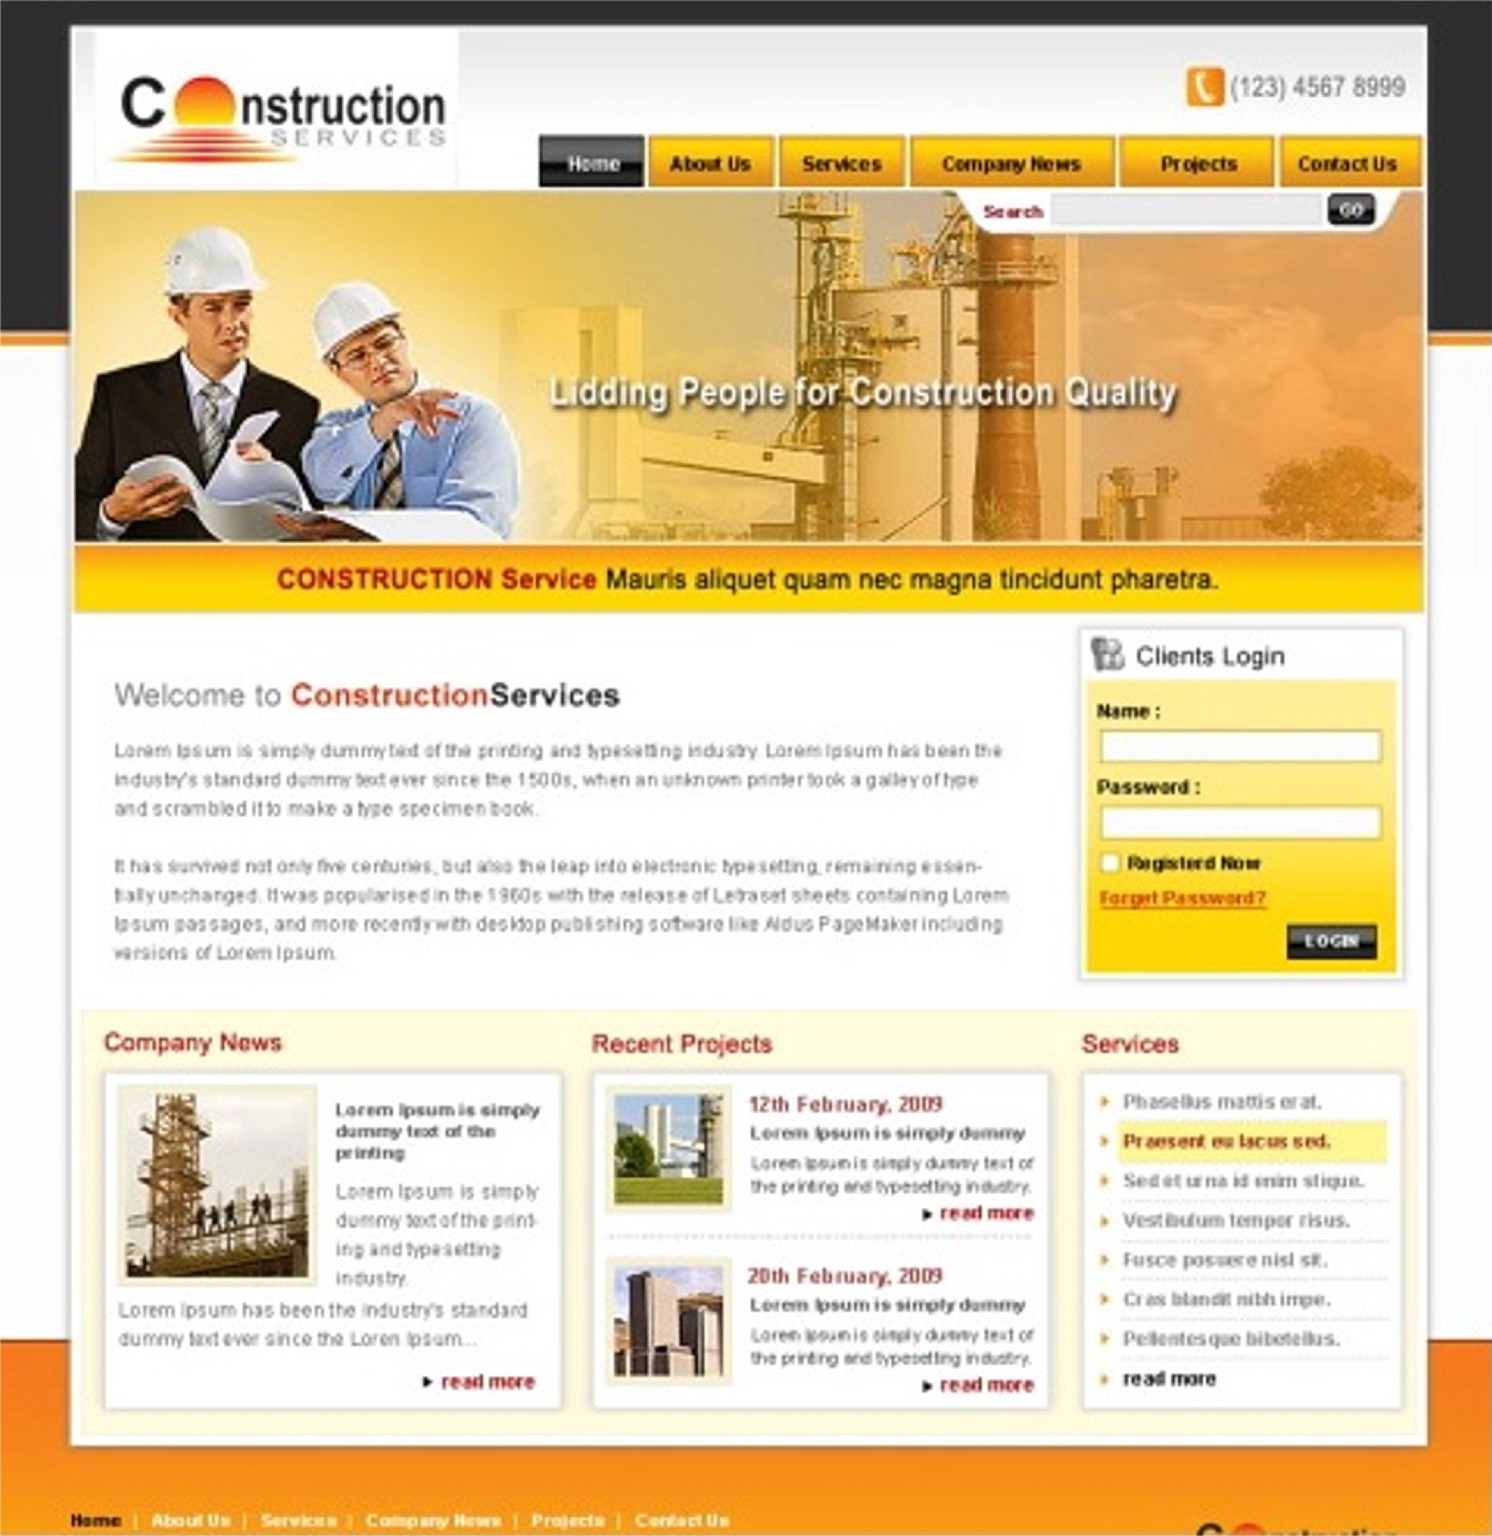 JRL-Enterprises LLC Web Templates10131